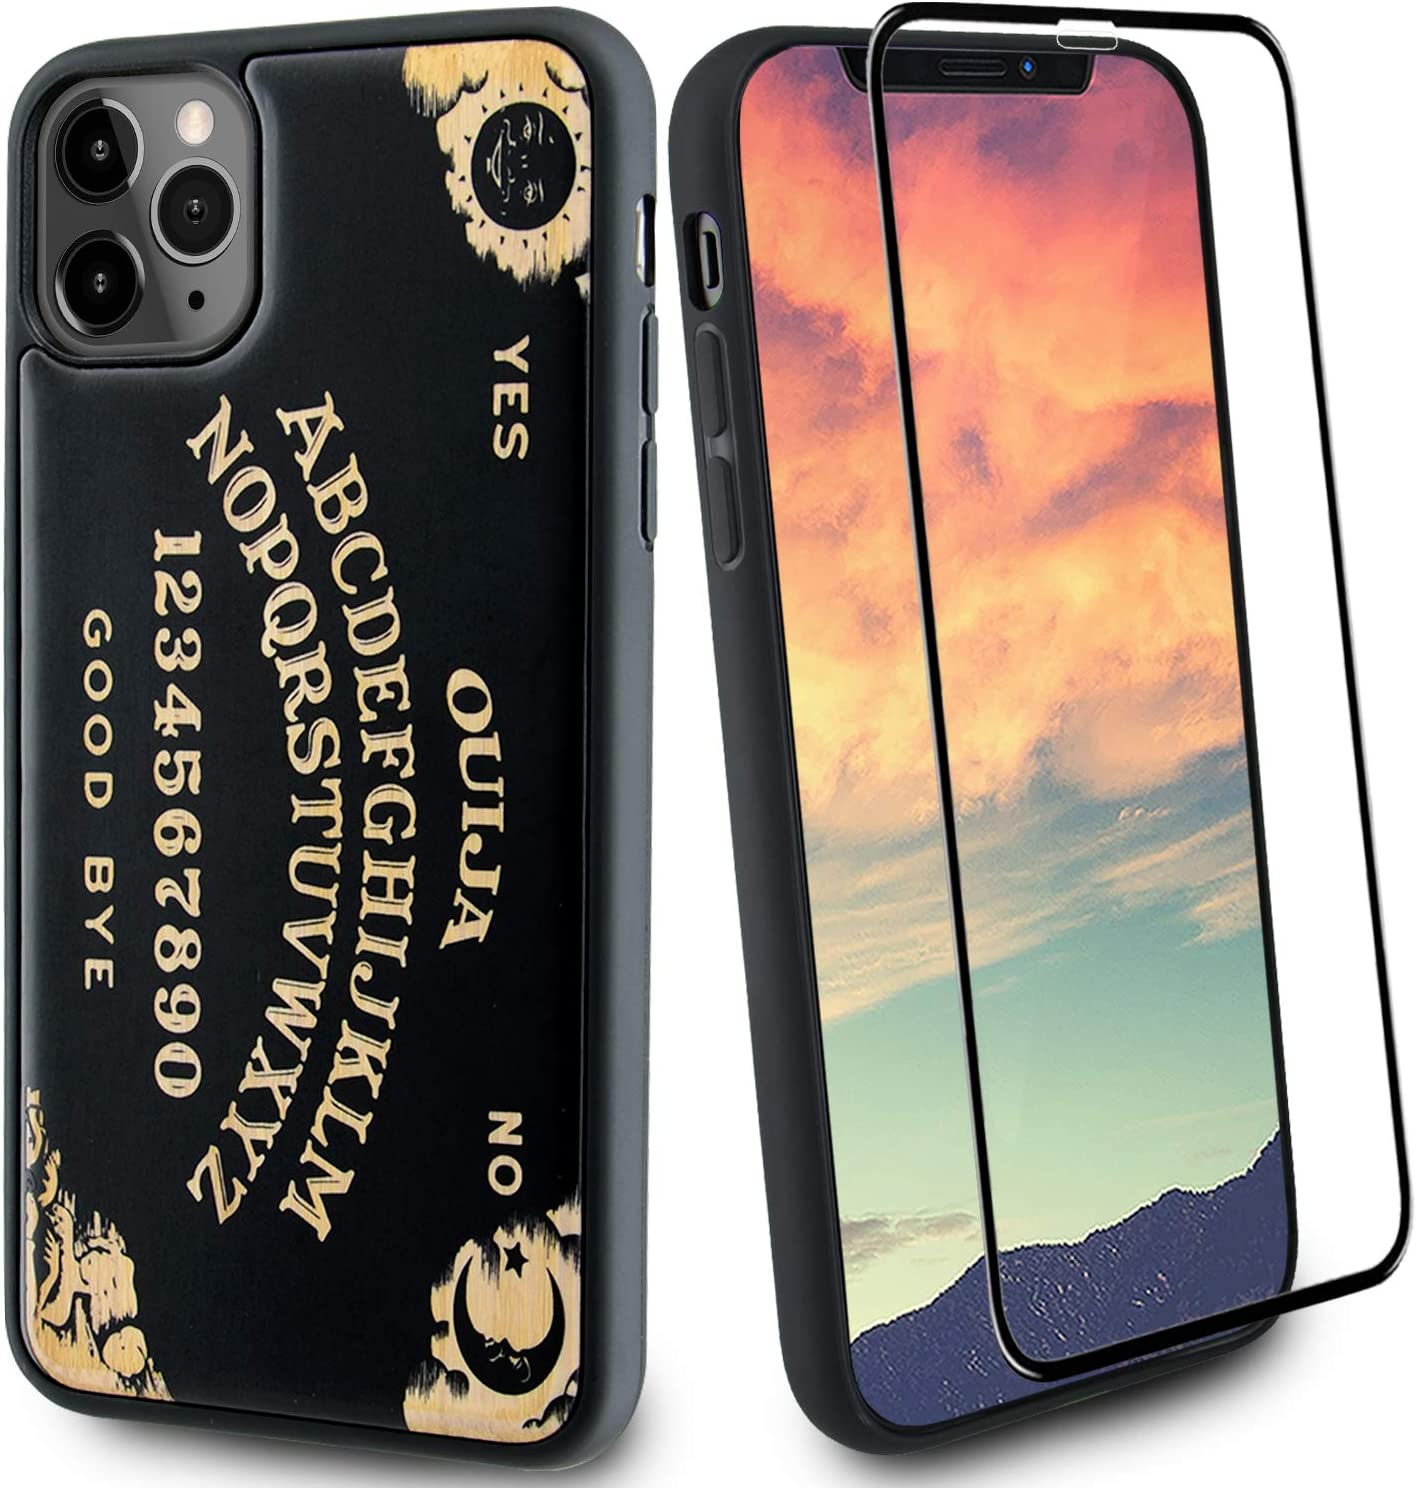 Gift by Angel Ouija Board Black Wood Phone Case Compatible with iPhone 11 Includes Strong 9H Glass Screen Protector, Engraved in USA, Wireless Charging Compatible (6.1 inches)